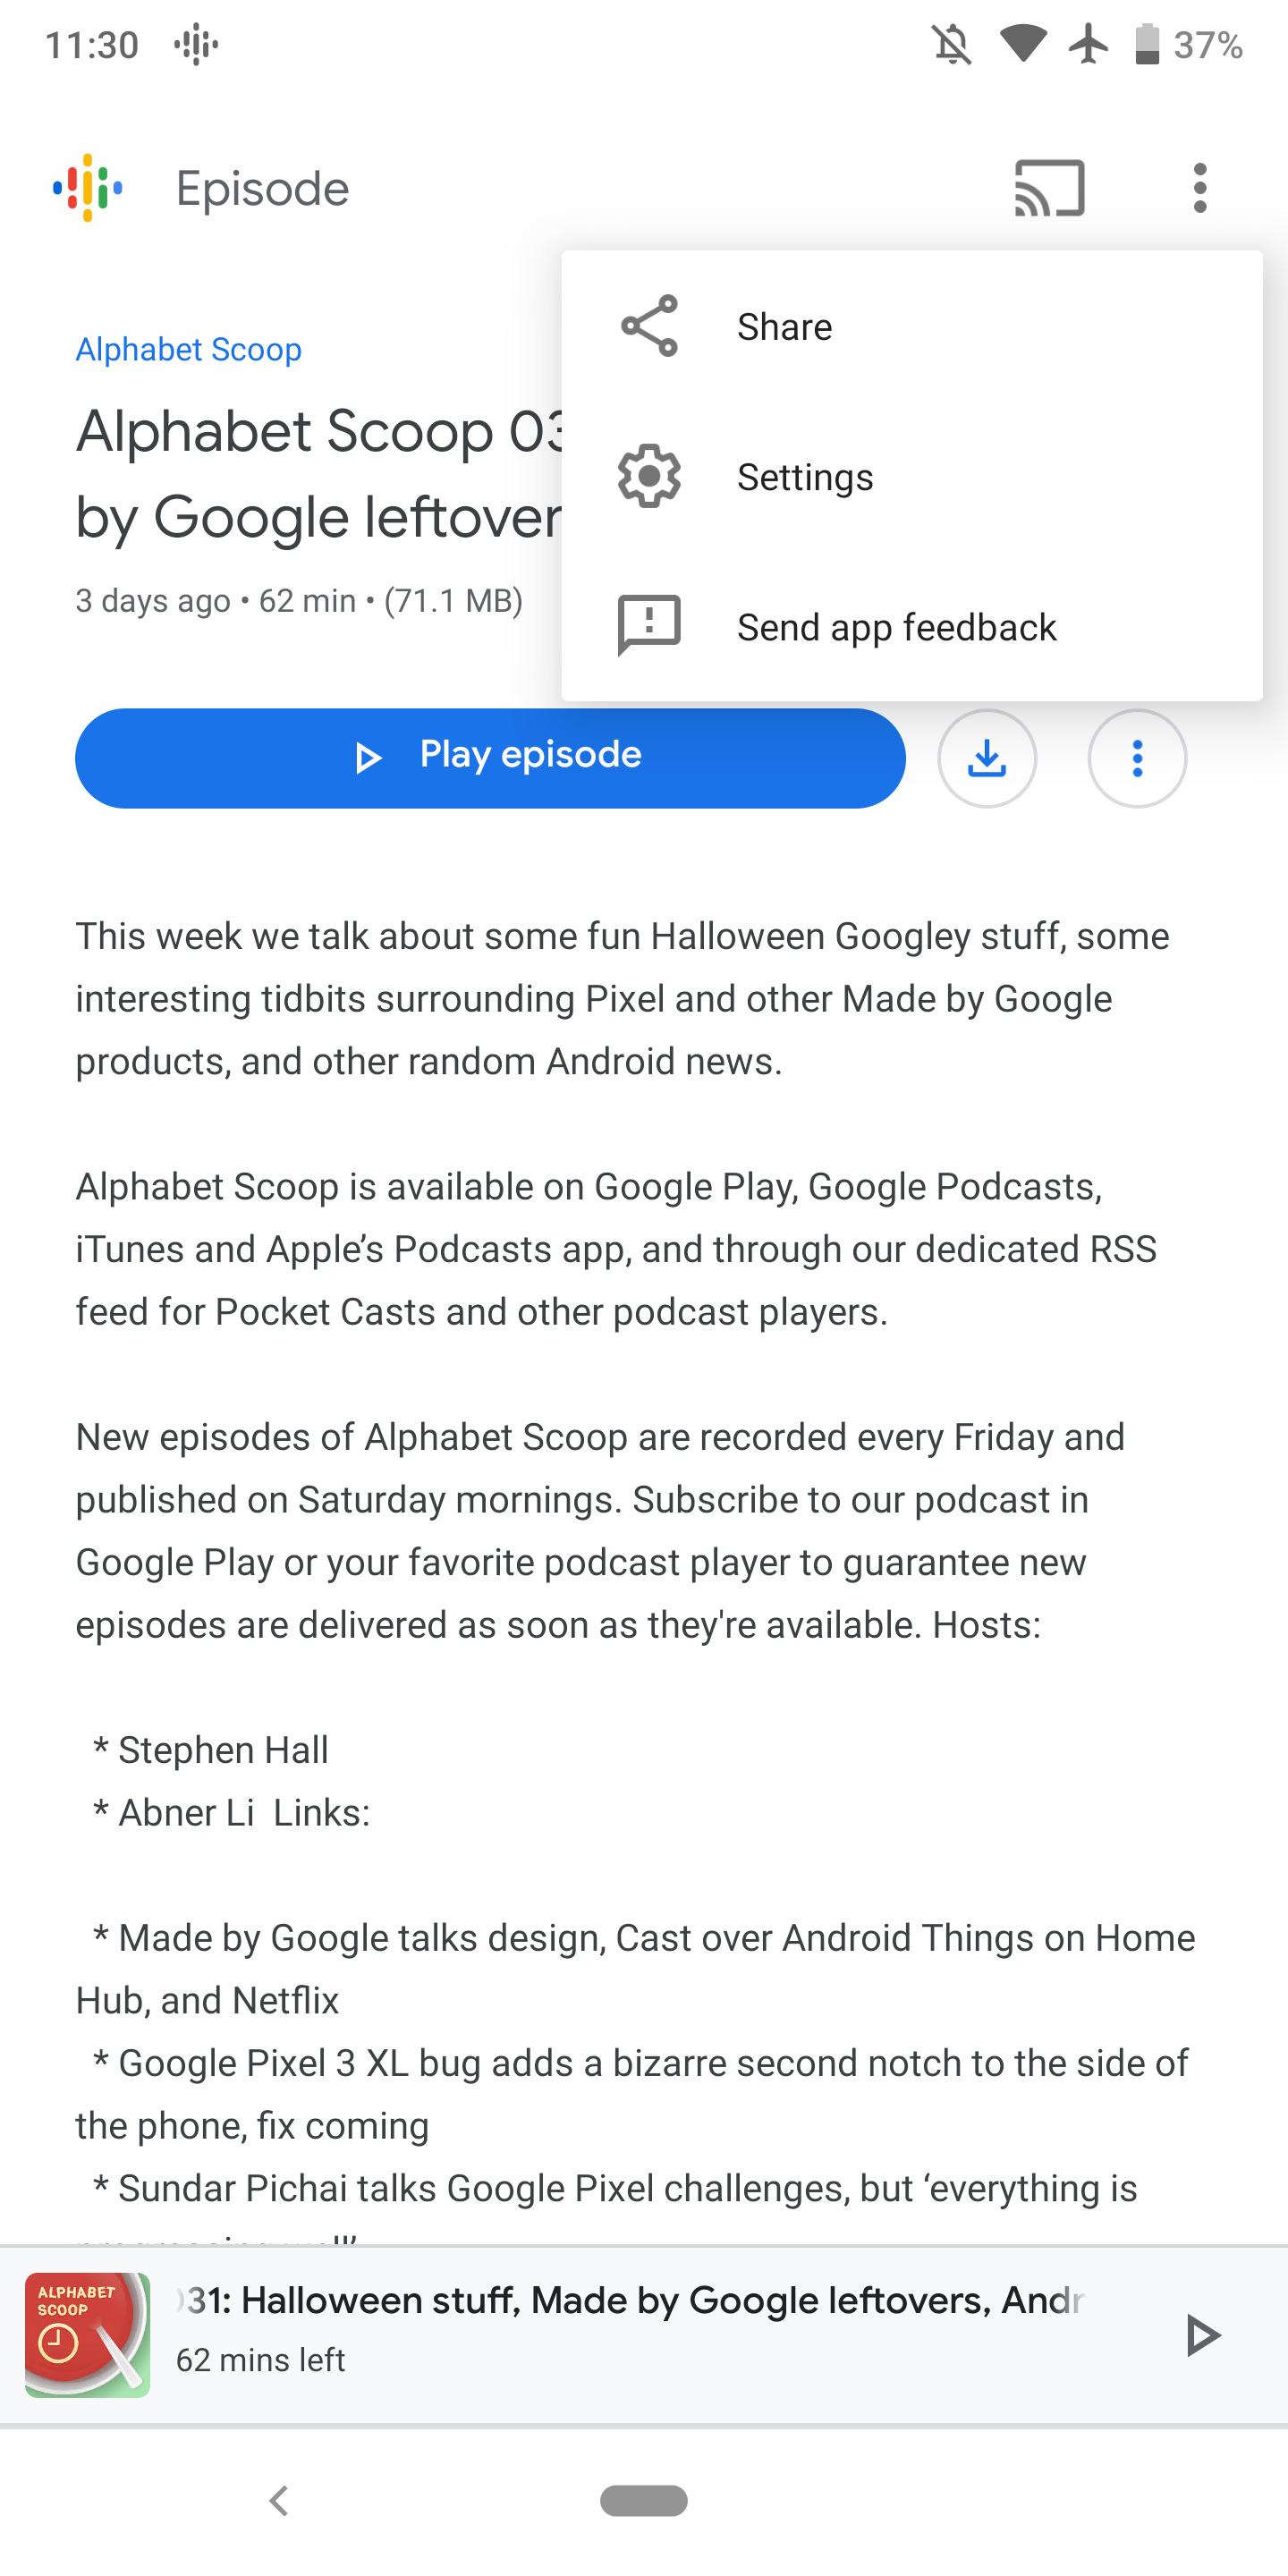 Google Podcasts for Android now lets you share episodes and